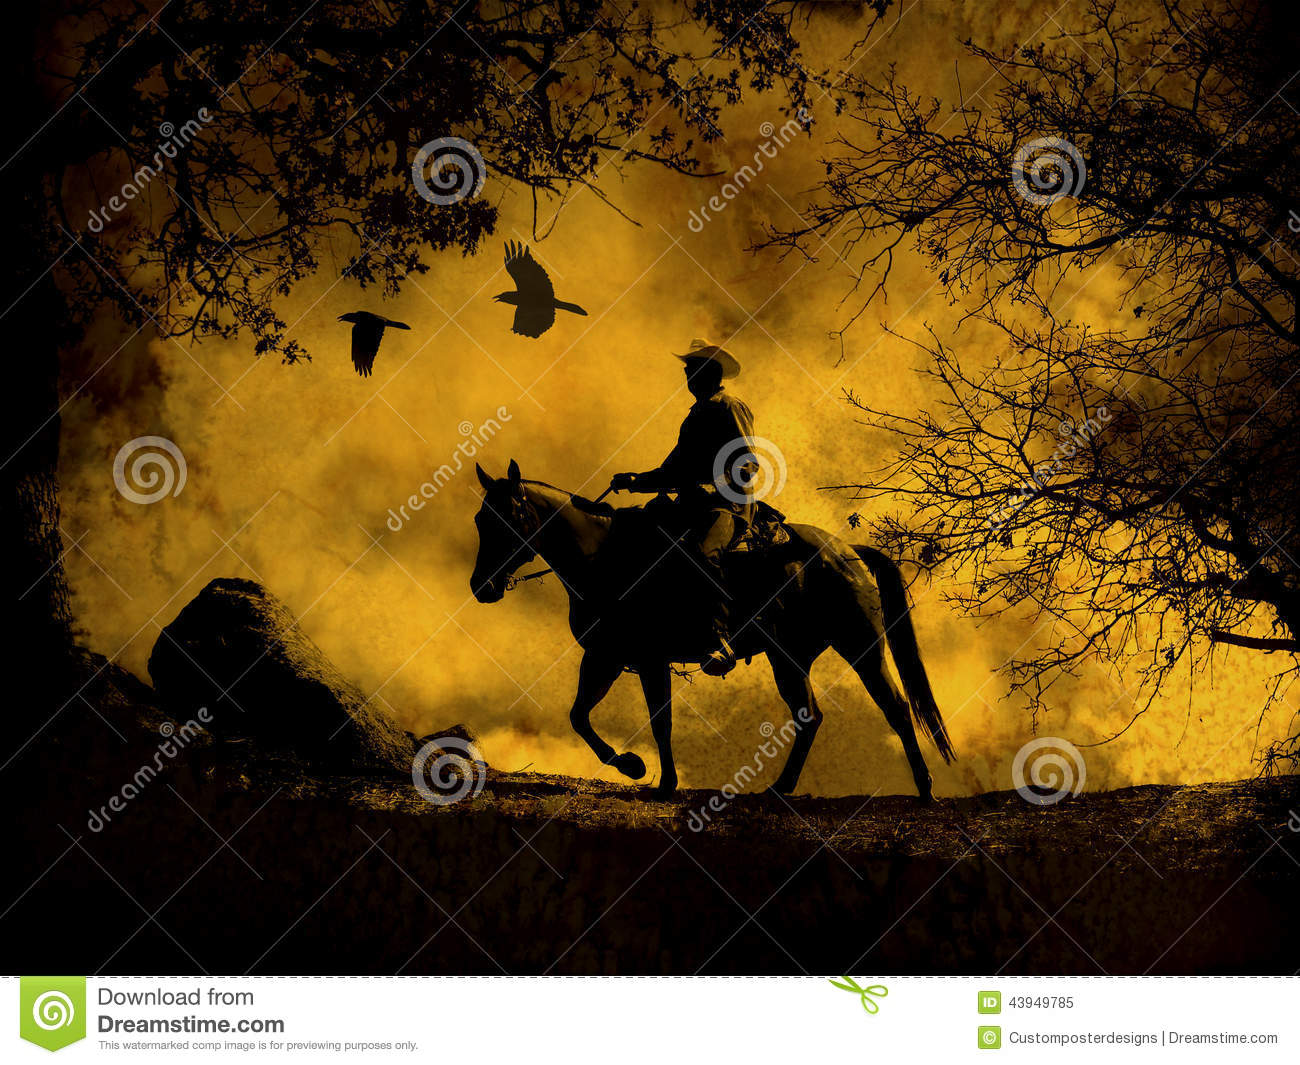 Download An Abstract Cowboy Riding In The Mountains With Trees, Crows Flying Above And A Textured Watercolor Yellow Background. Stock Image - Image of black, design: 43949785